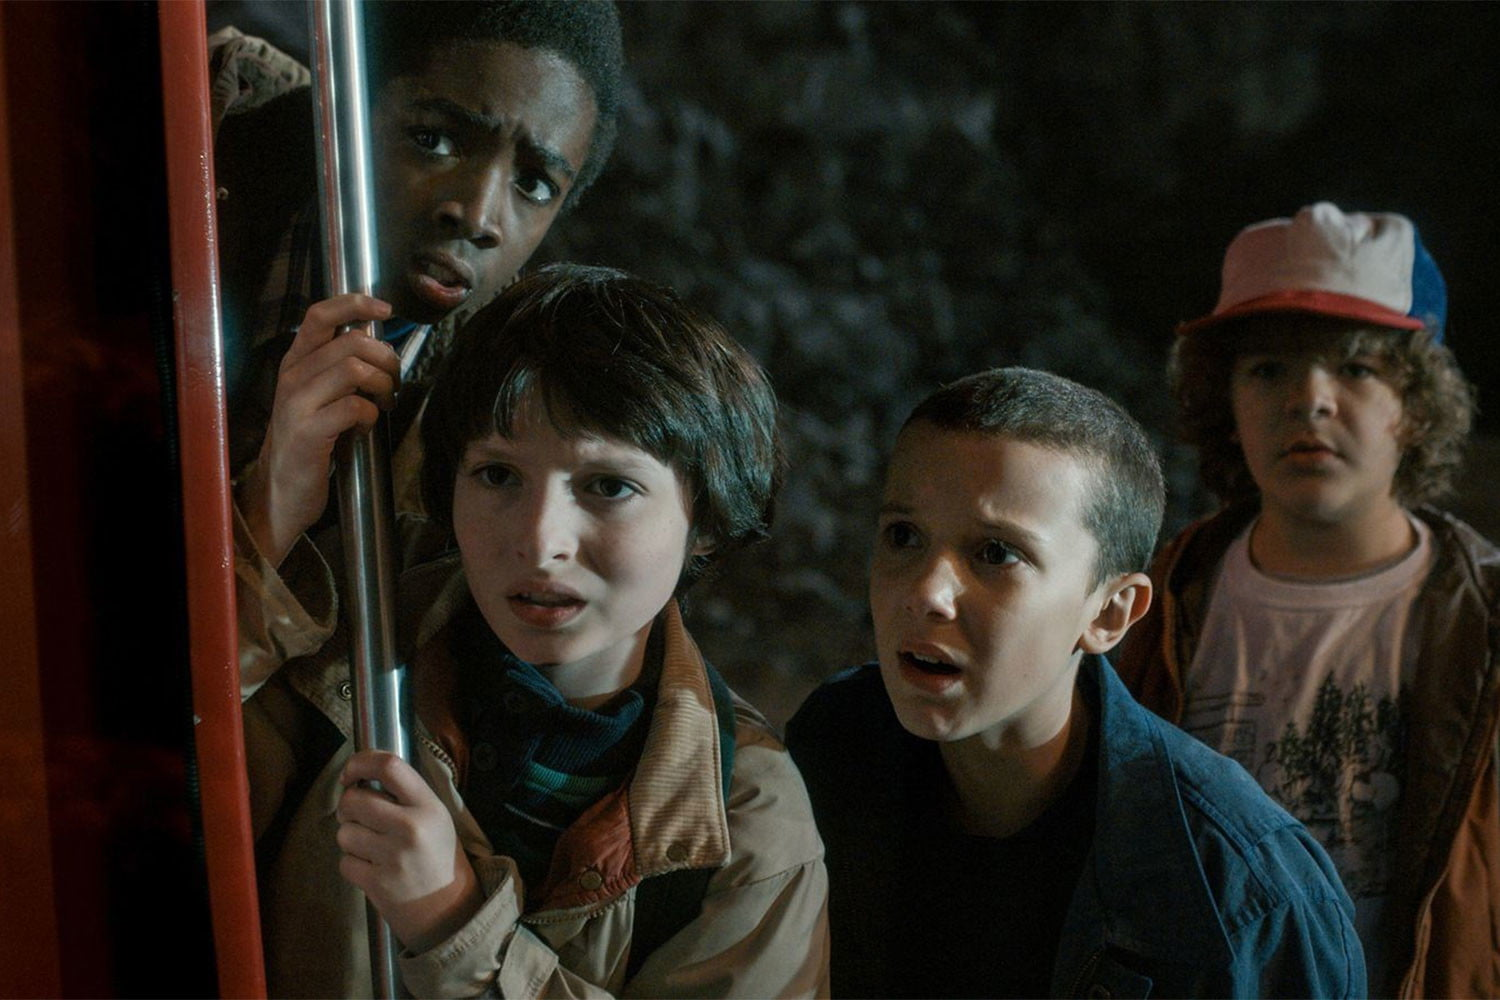 Stranger Things Season 4: Release Date, Trailer, Cast, and More ...